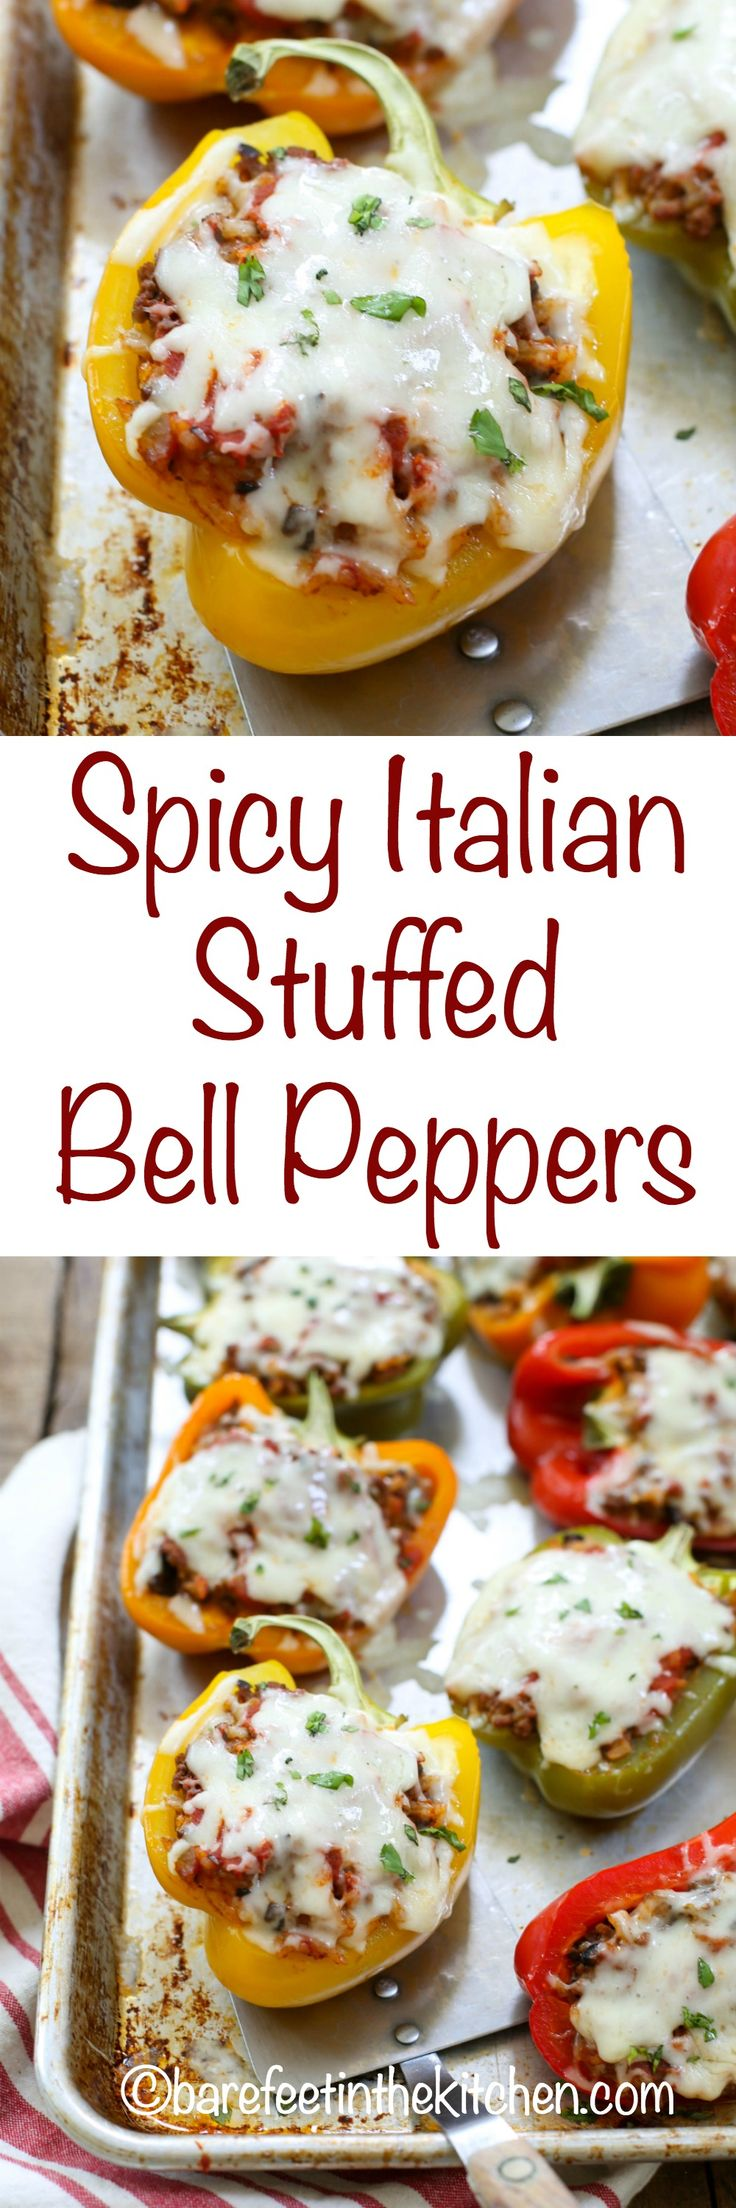 Spicy Italian Stuffed Bell Peppers are loaded with Italian flavor and just a hint of heat. If spicy isn't your thing, skip the crushed red pepper and you'll have an Italian-style meal that will make everyone happy. Served with a salad or warm garlic bread, this is a hearty meal that comes together without anyRead More